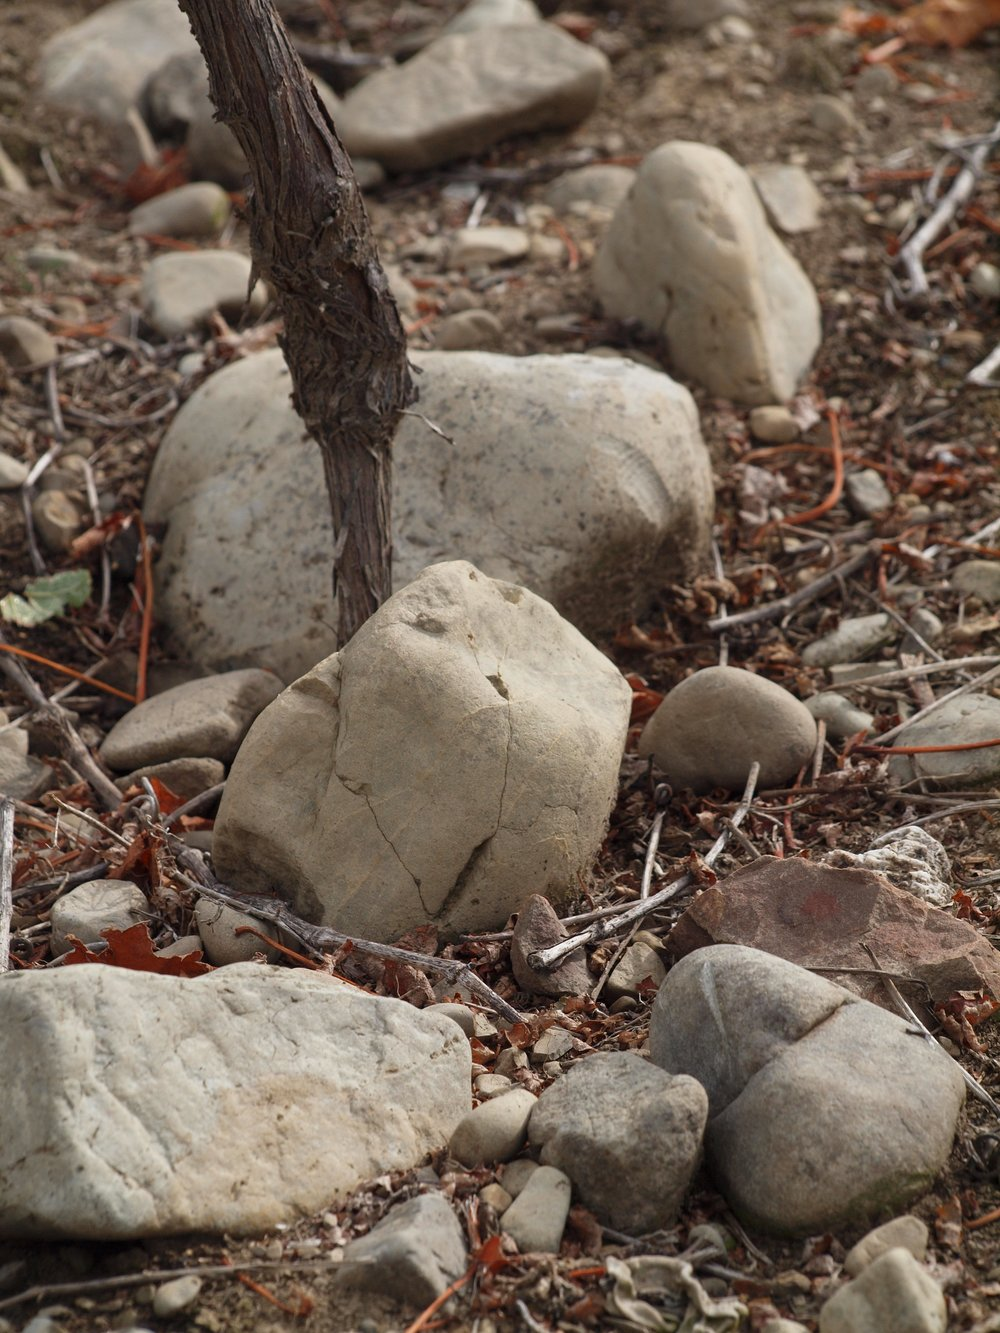 SAUVIGNON BLANC VINES IN THE JURASSIC GREYWACKE RIVER BED STONES OF OUR EAST TERRACE, WAIHOPAI VALLEY VINEYARD